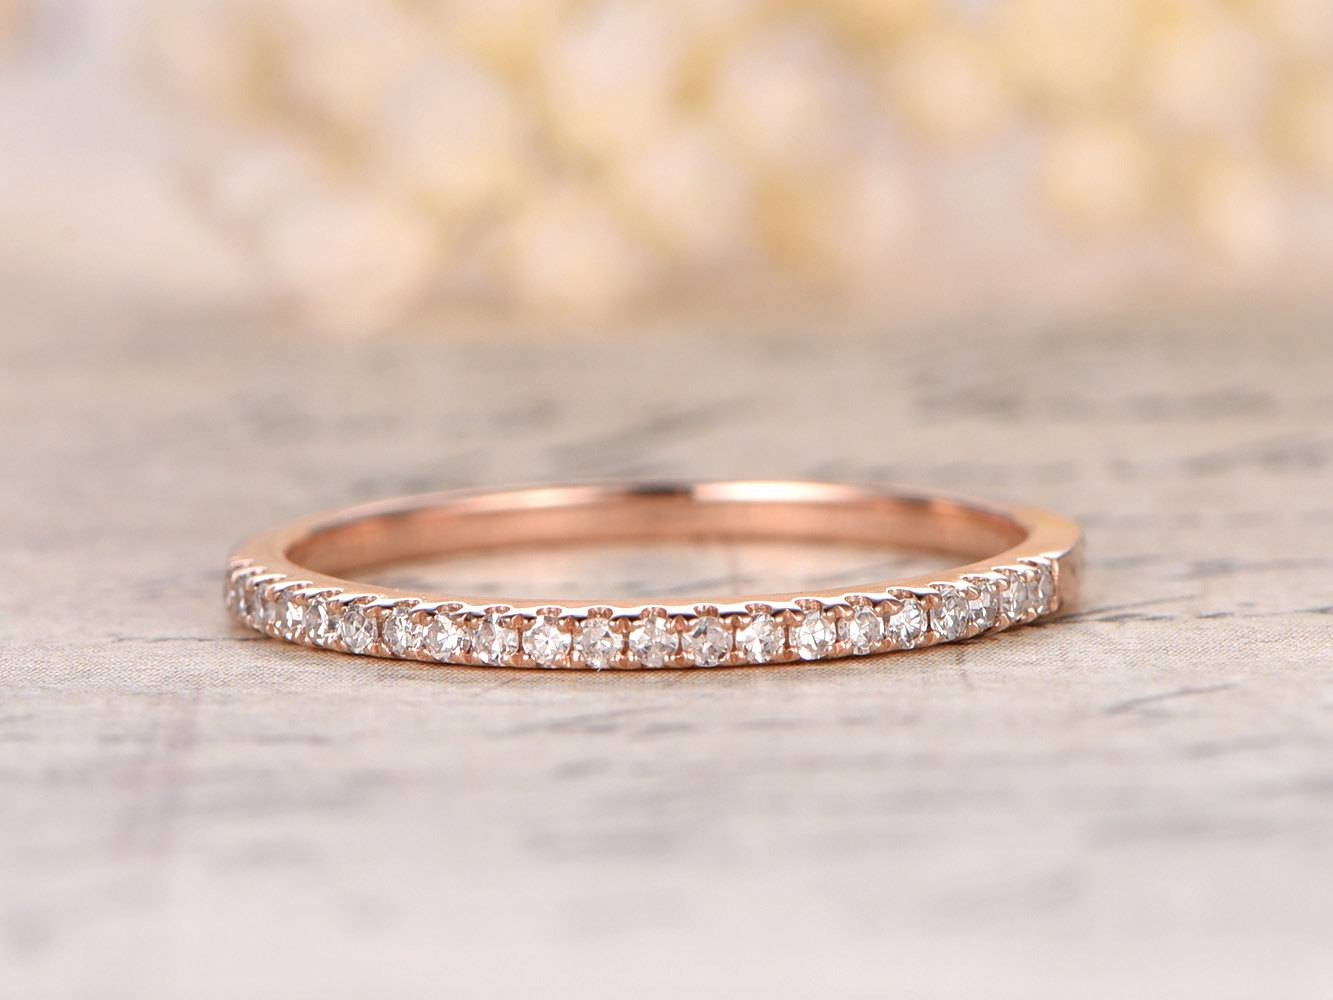 Valentine's Day Present 14K Rose Gold Wedding Band Half Pertaining To Rose Gold Diamond Wedding Bands (View 15 of 15)